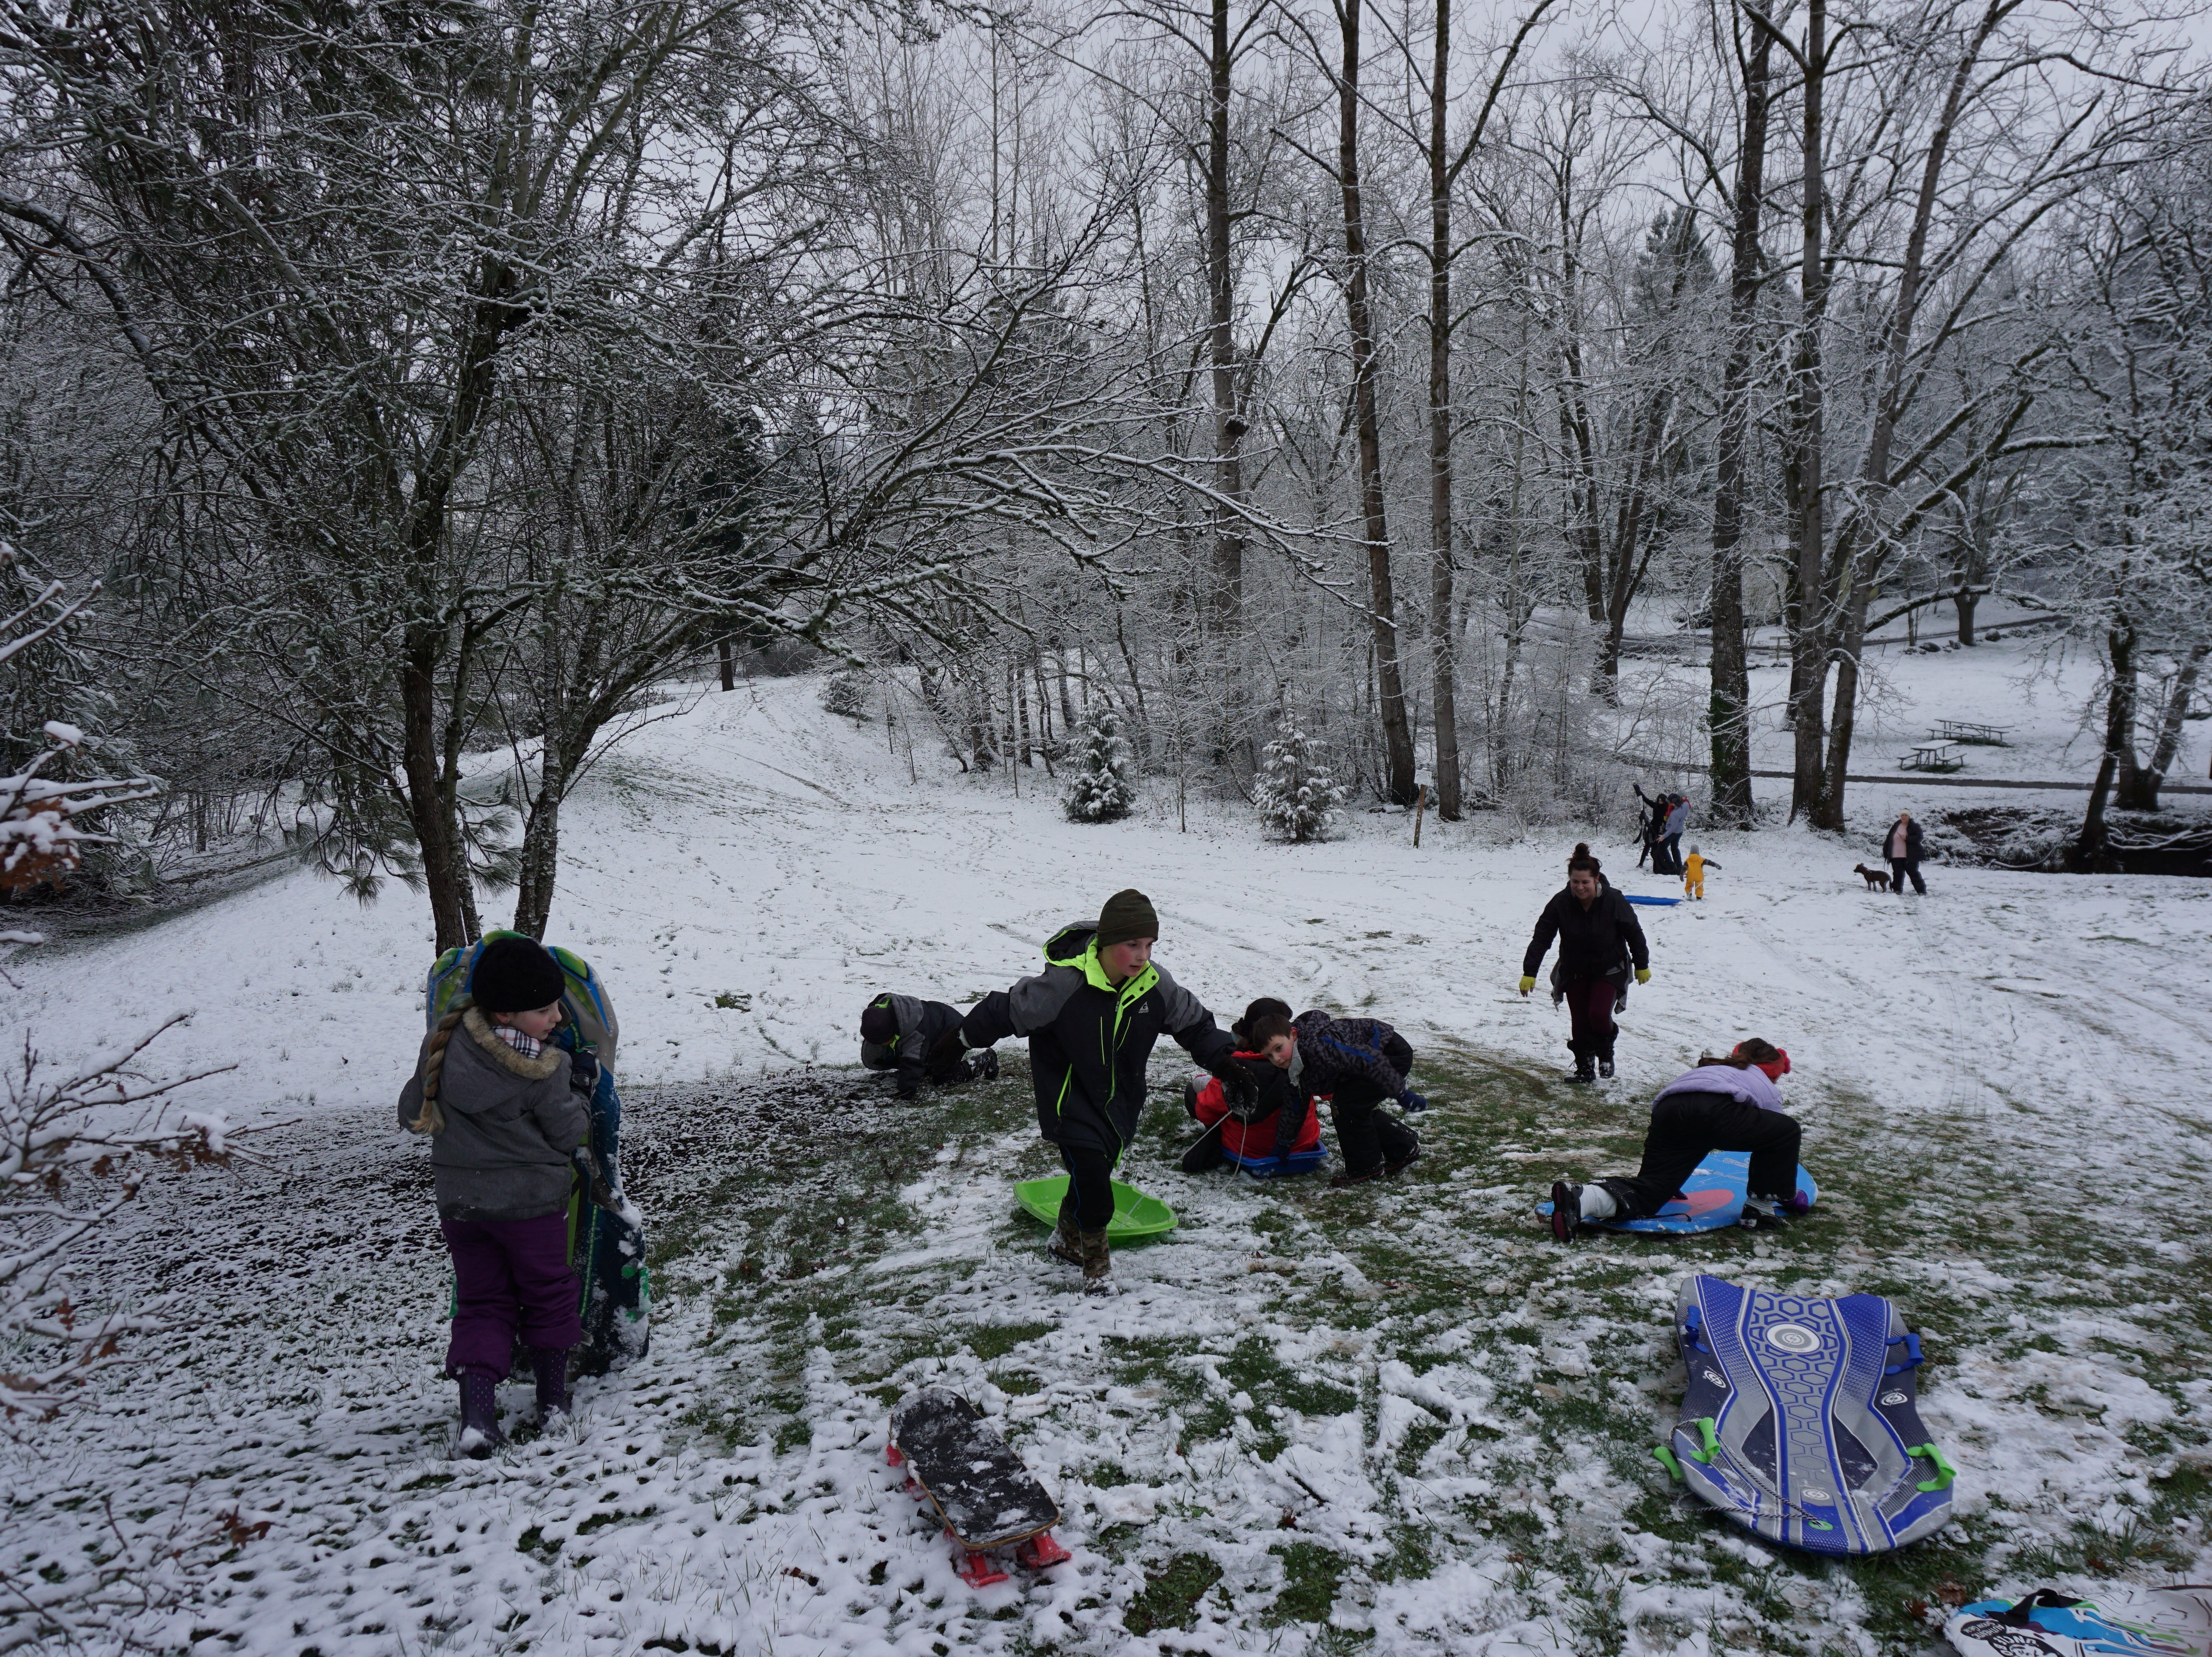 With school cancelled in Salem-Keizer because of the snow, young sledders descend the hills on Tuesday, Feb. 5, 2019, at Clark Creek Park in Southeast Salem.